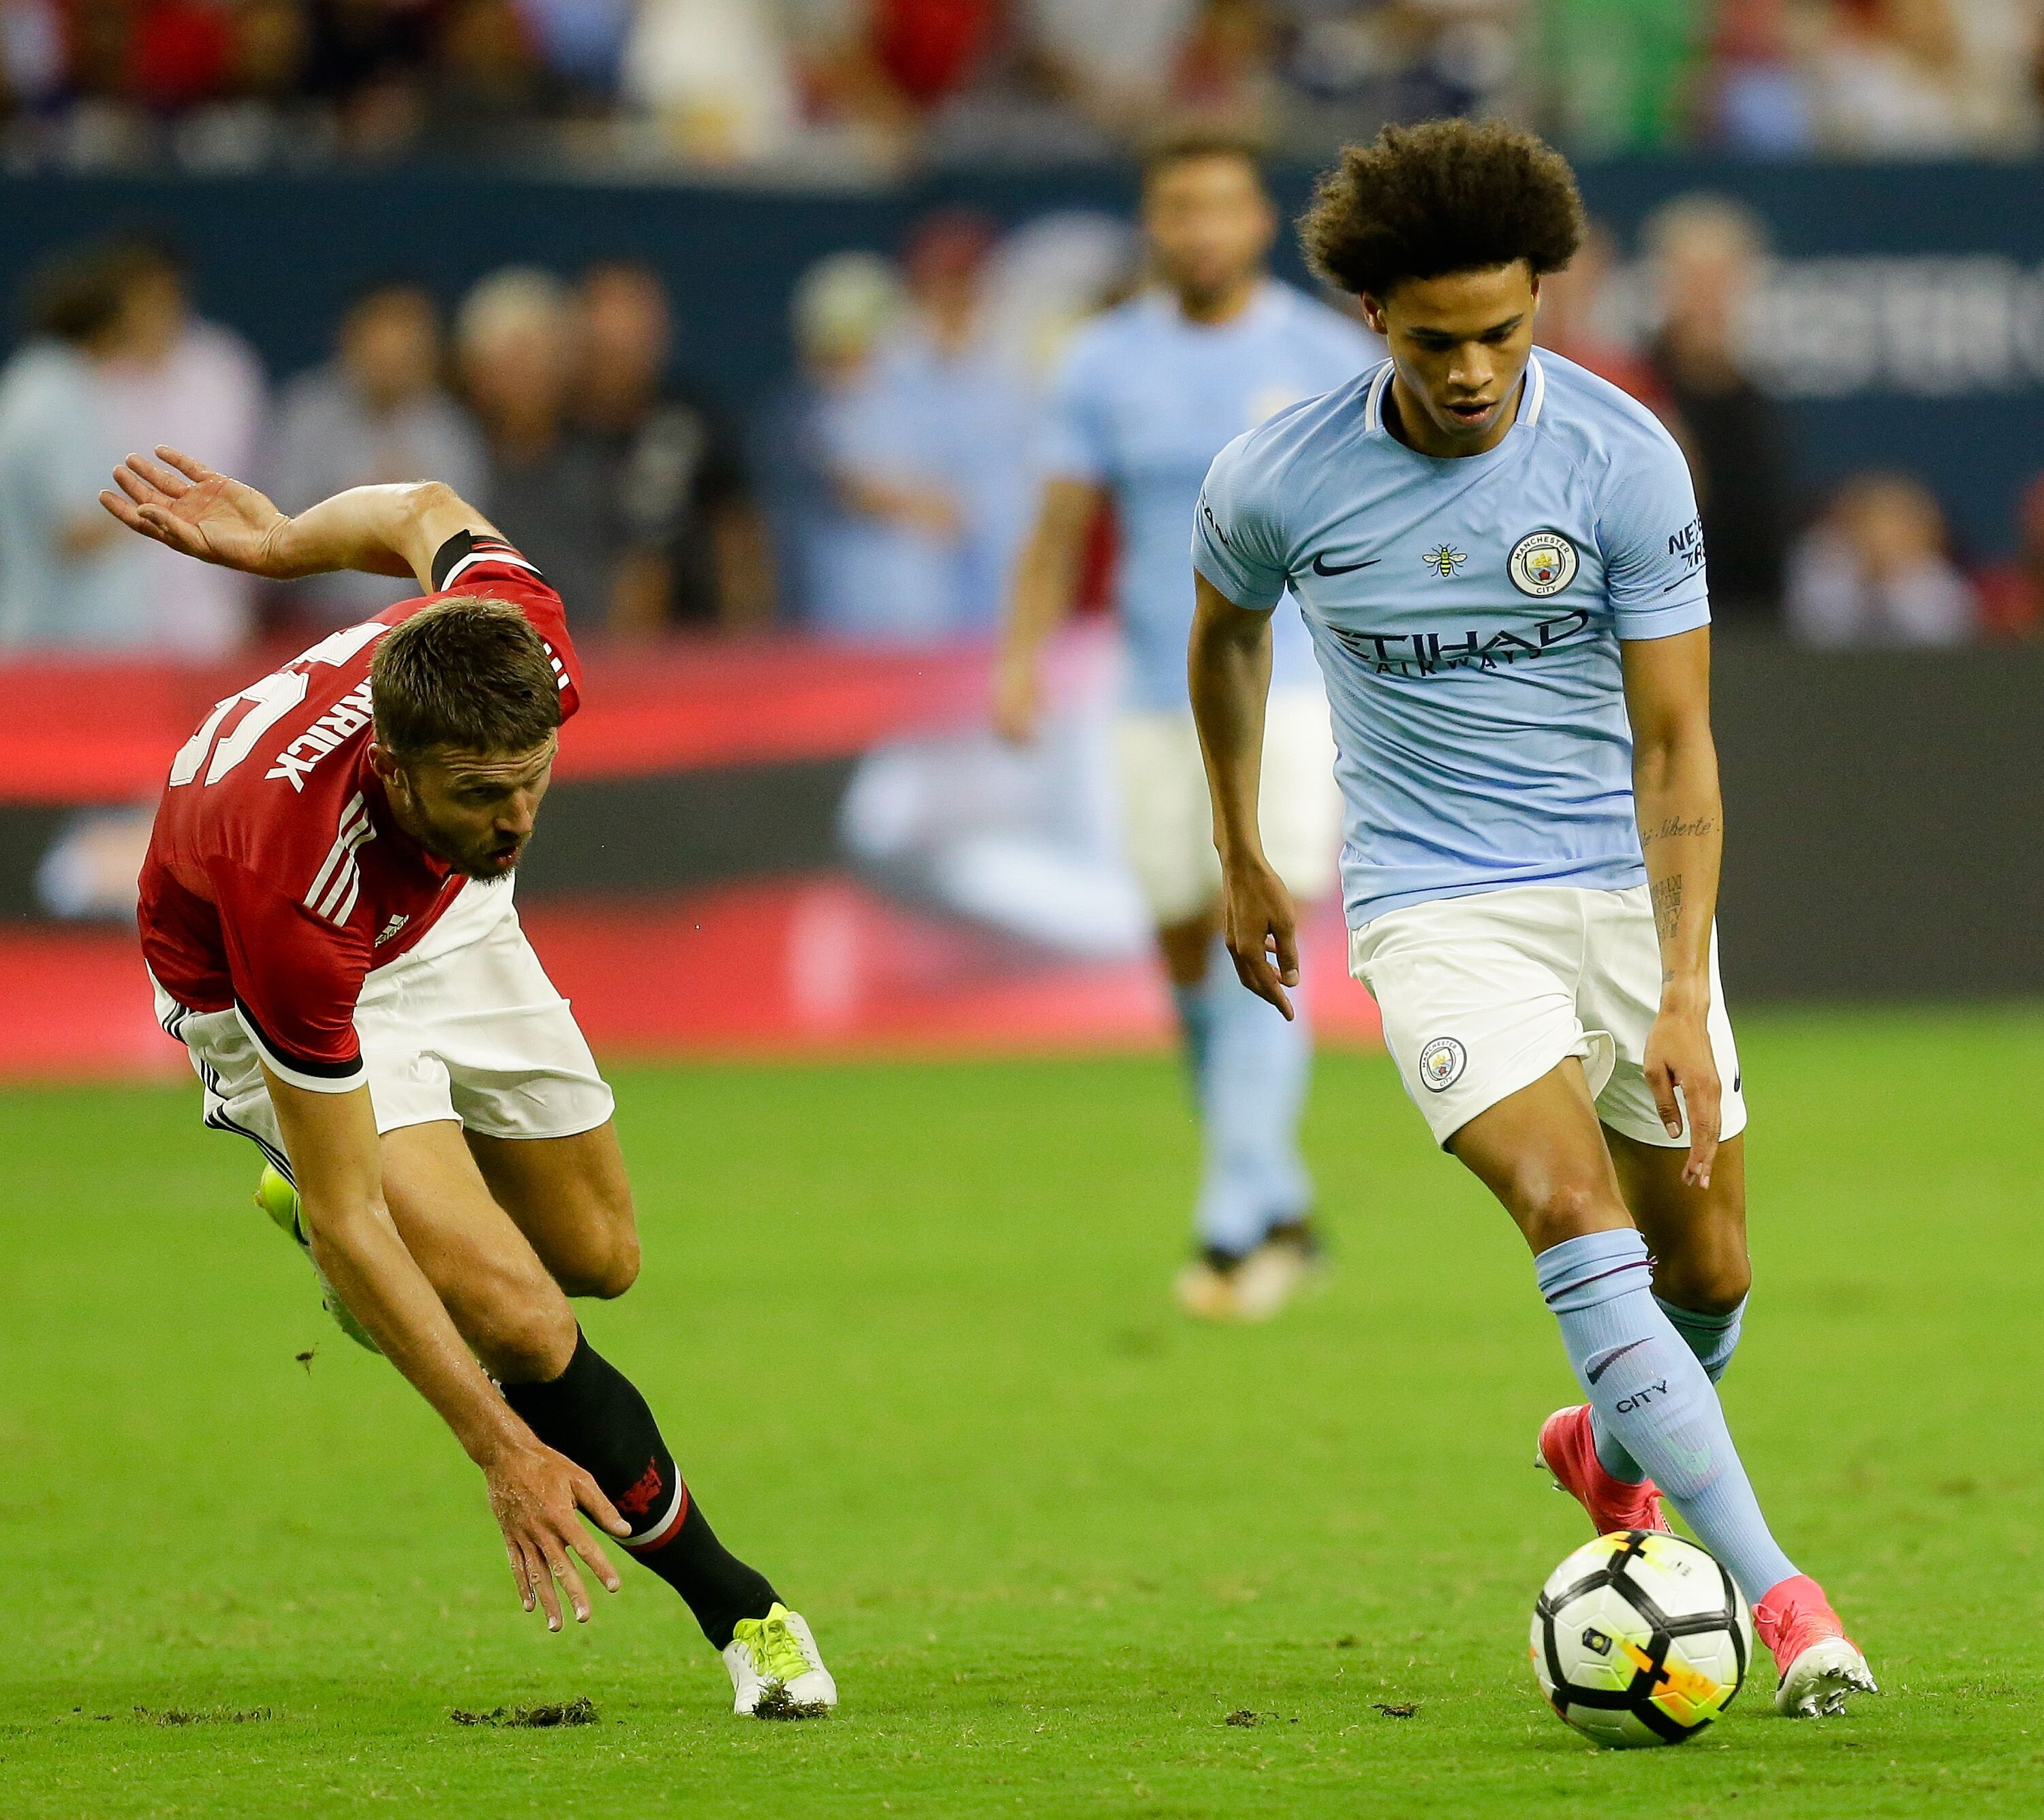 Manchester City FC 2017 18 Player Preview – Leroy Sane